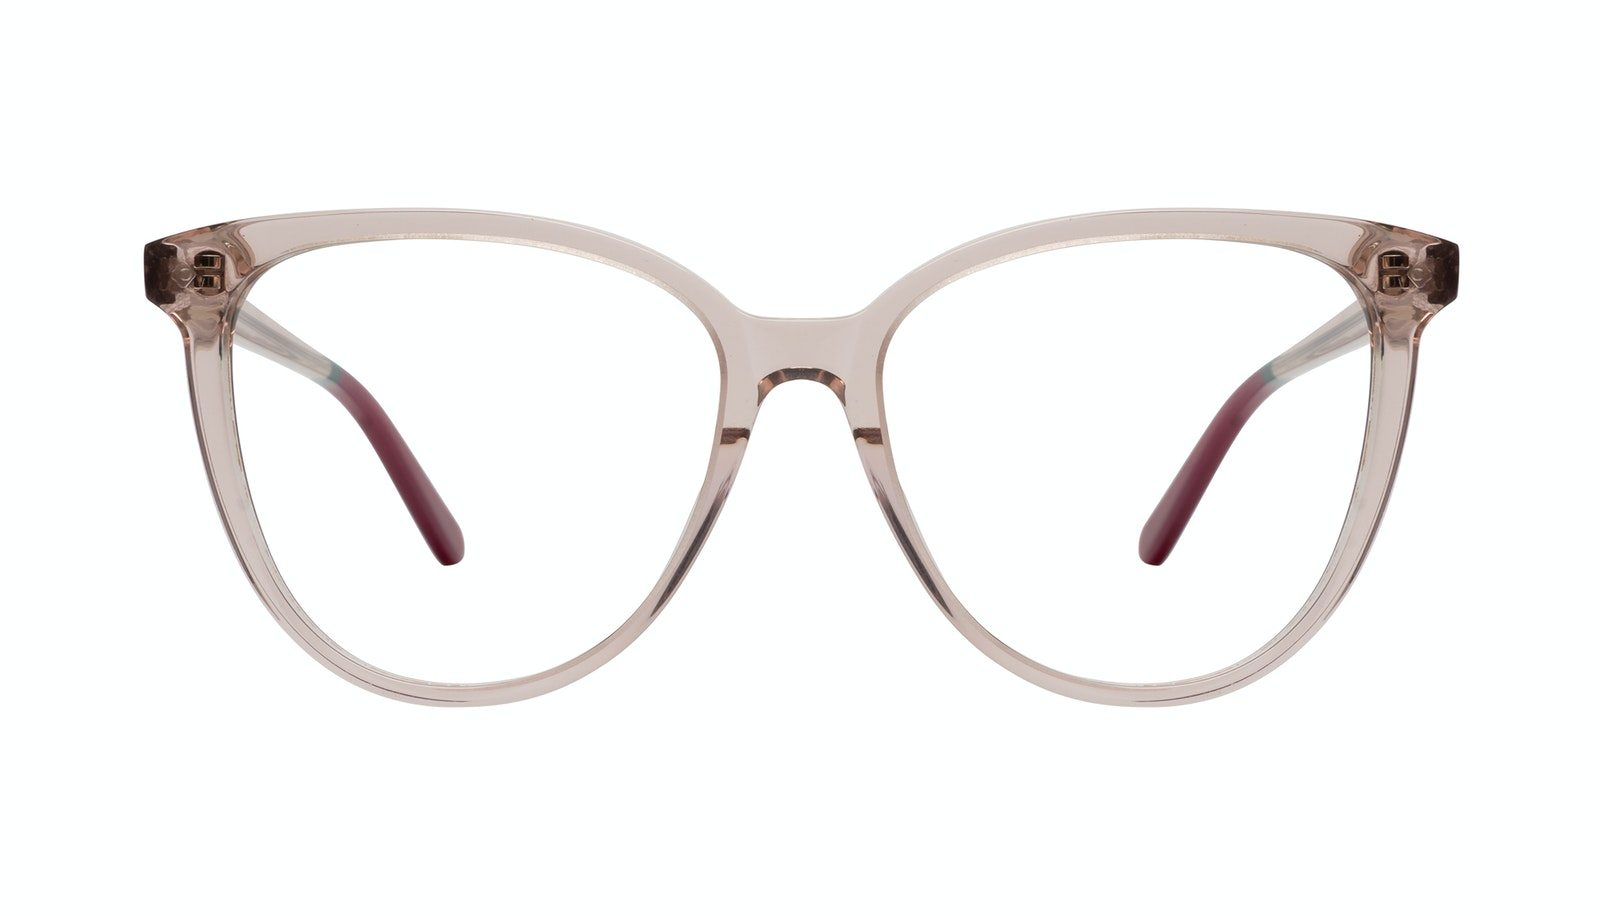 Affordable Fashion Glasses Round Eyeglasses Women Jane Rose